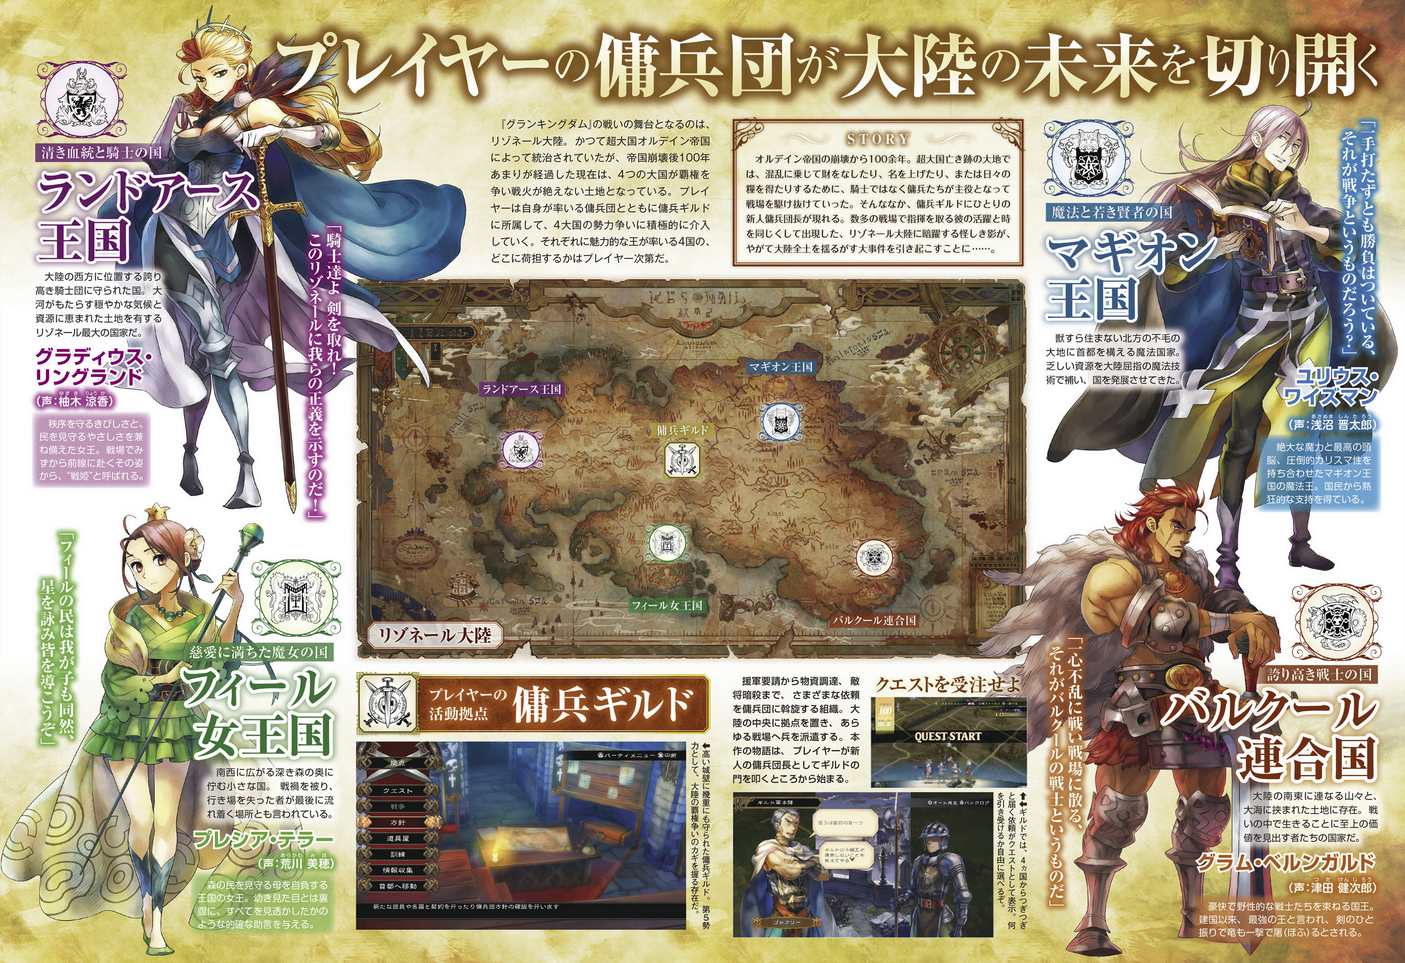 grand kingdom unveiled for the ps4 and vita